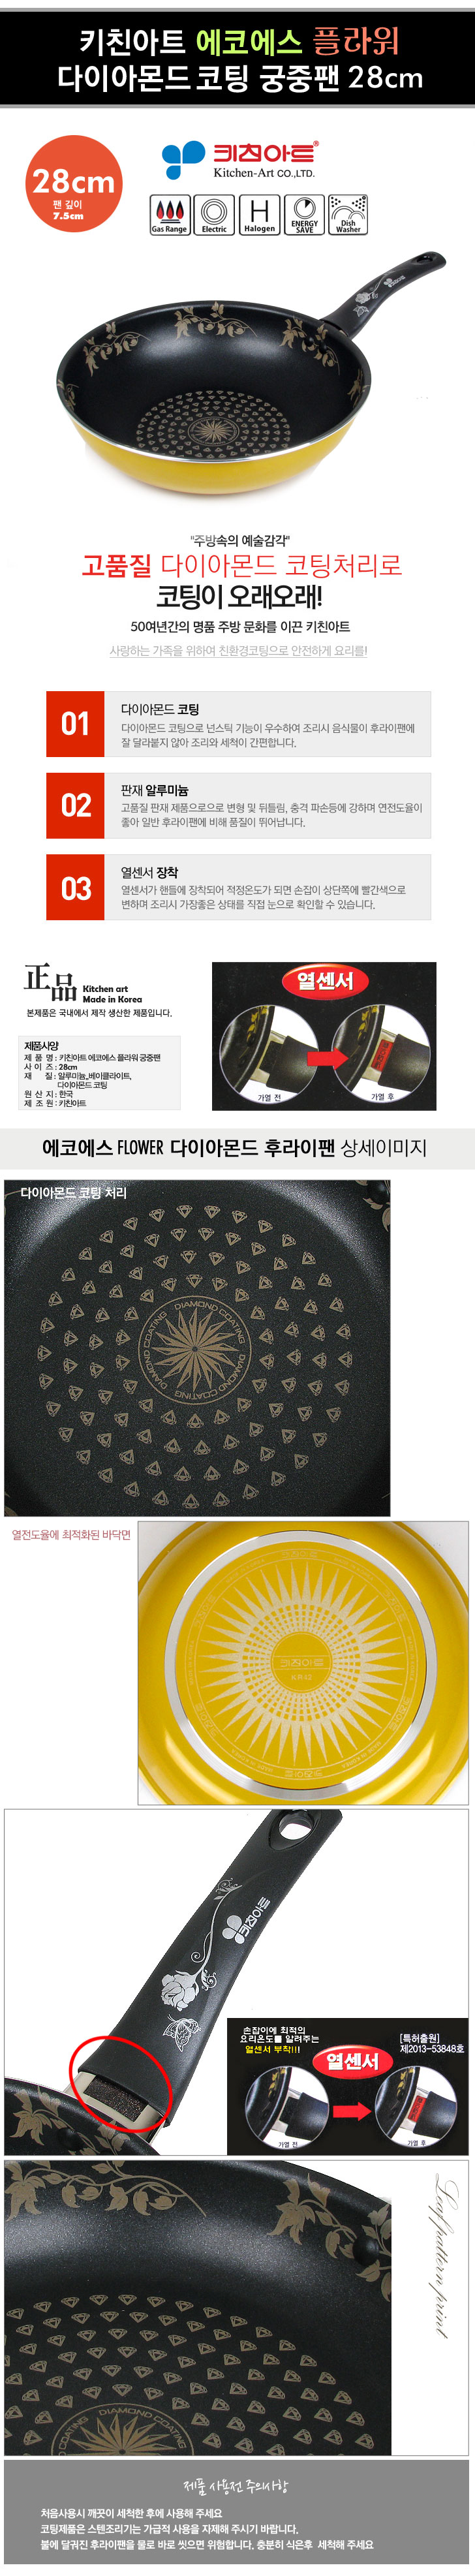 [ KITCHENART ] KitchenArt Eco S Diamond Flower Temperatursensor Wokpan 28cm